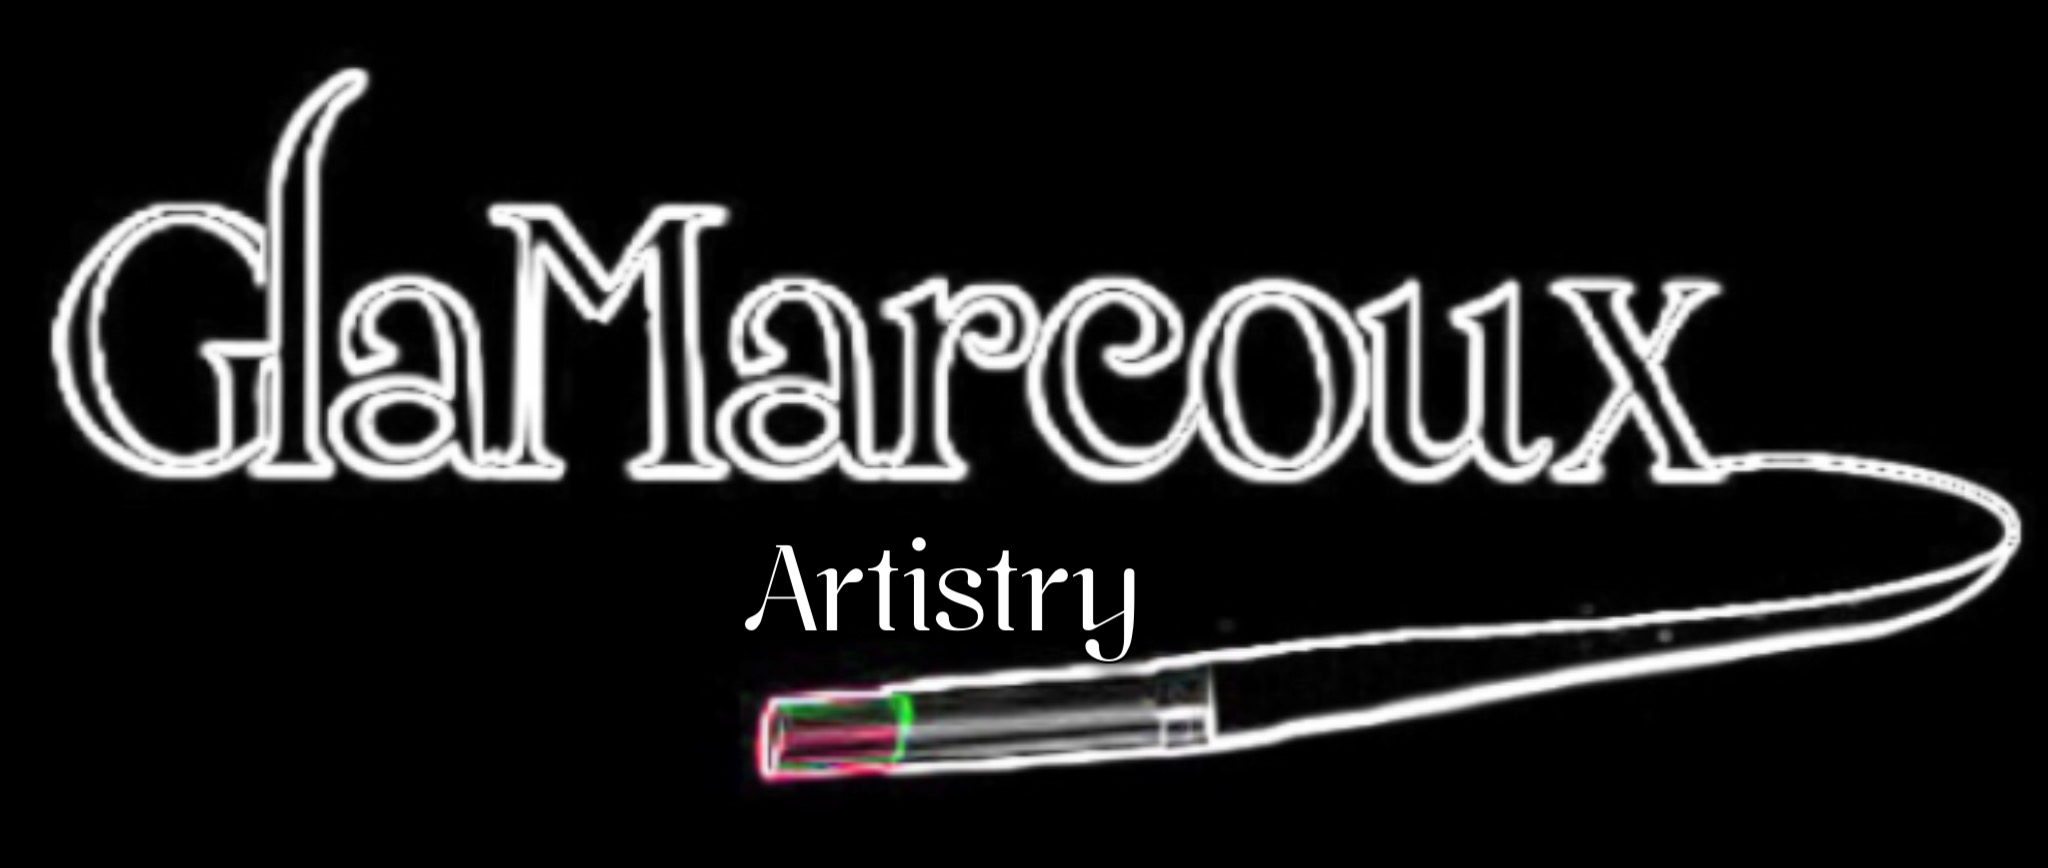 GlaMarcoux Artistry